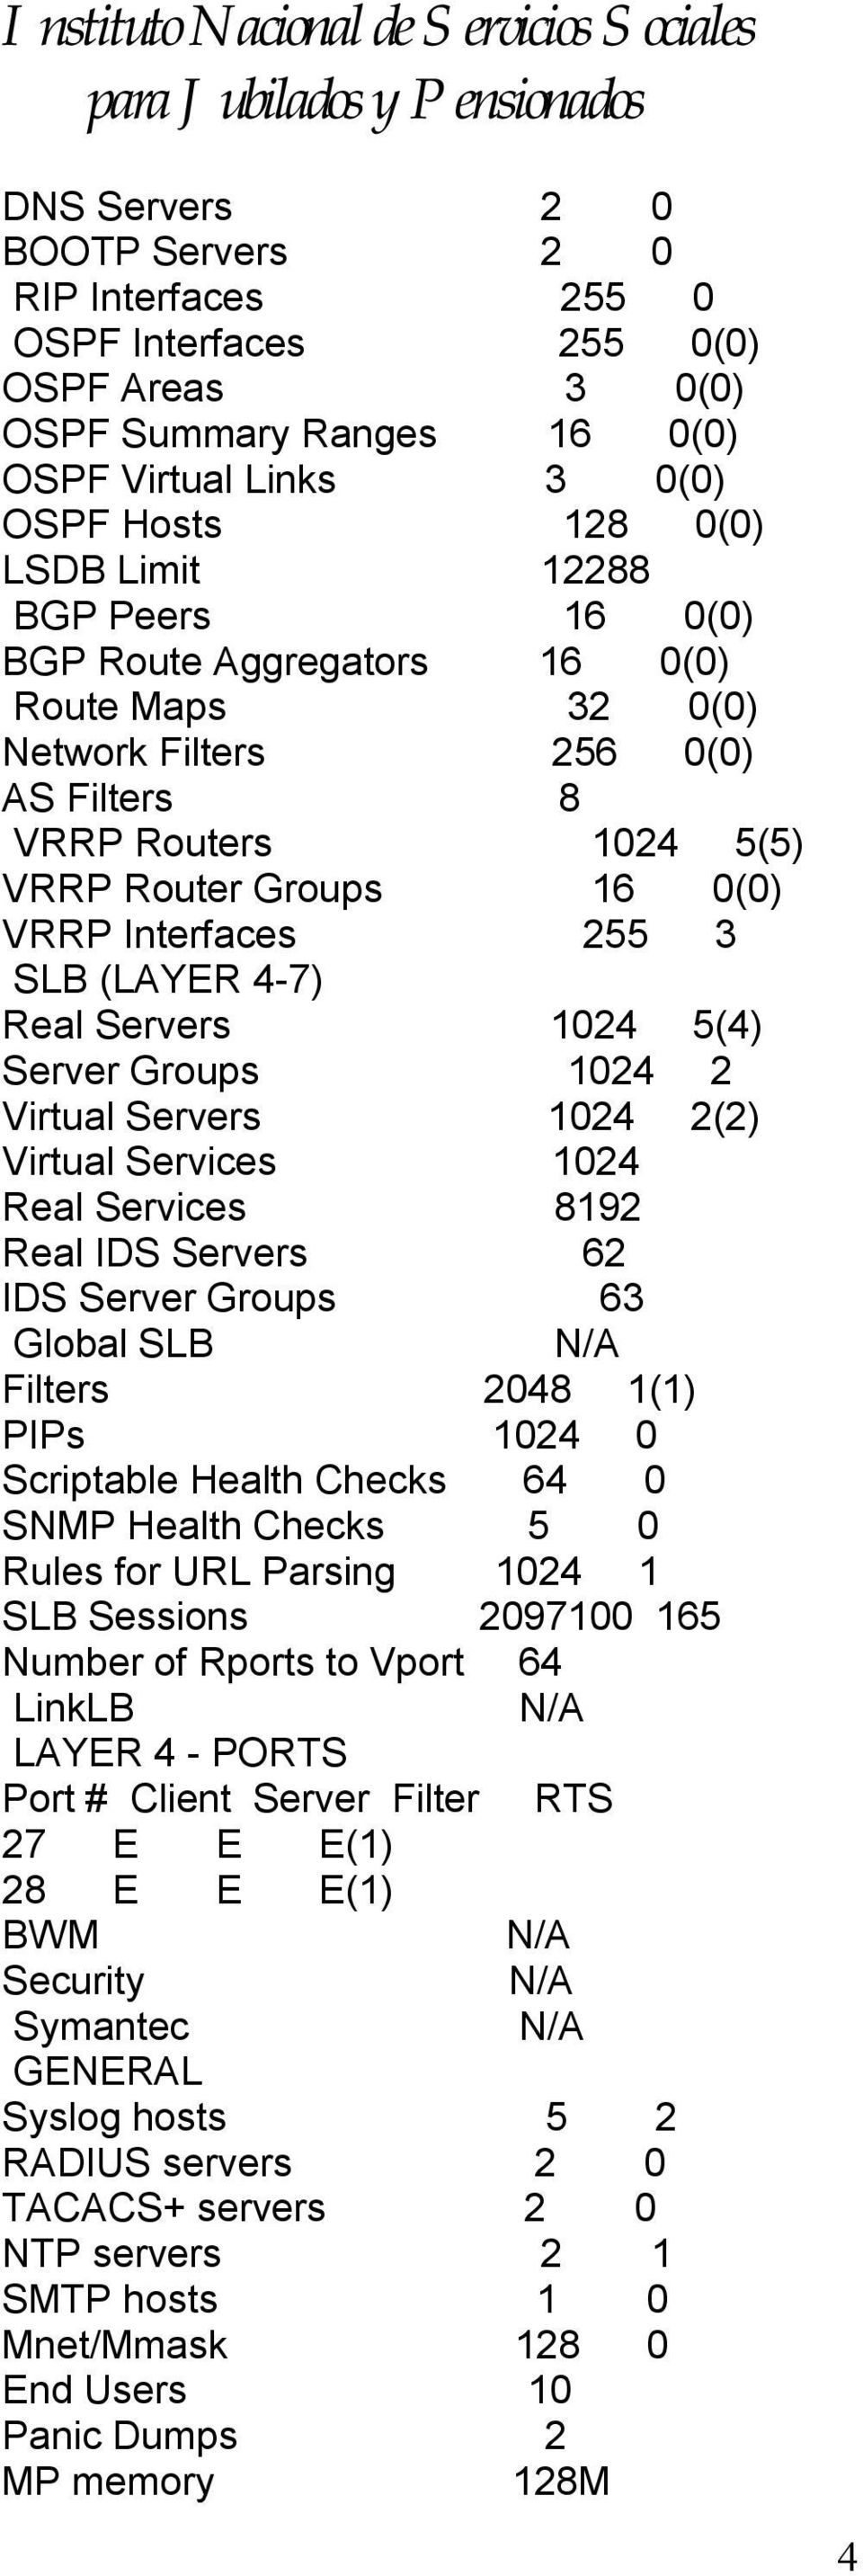 1024 5(4) Server Groups 1024 2 Virtual Servers 1024 2(2) Virtual Services 1024 Real Services 8192 Real IDS Servers 62 IDS Server Groups 63 Global SLB Filters 2048 1(1) PIPs 1024 0 Scriptable Health